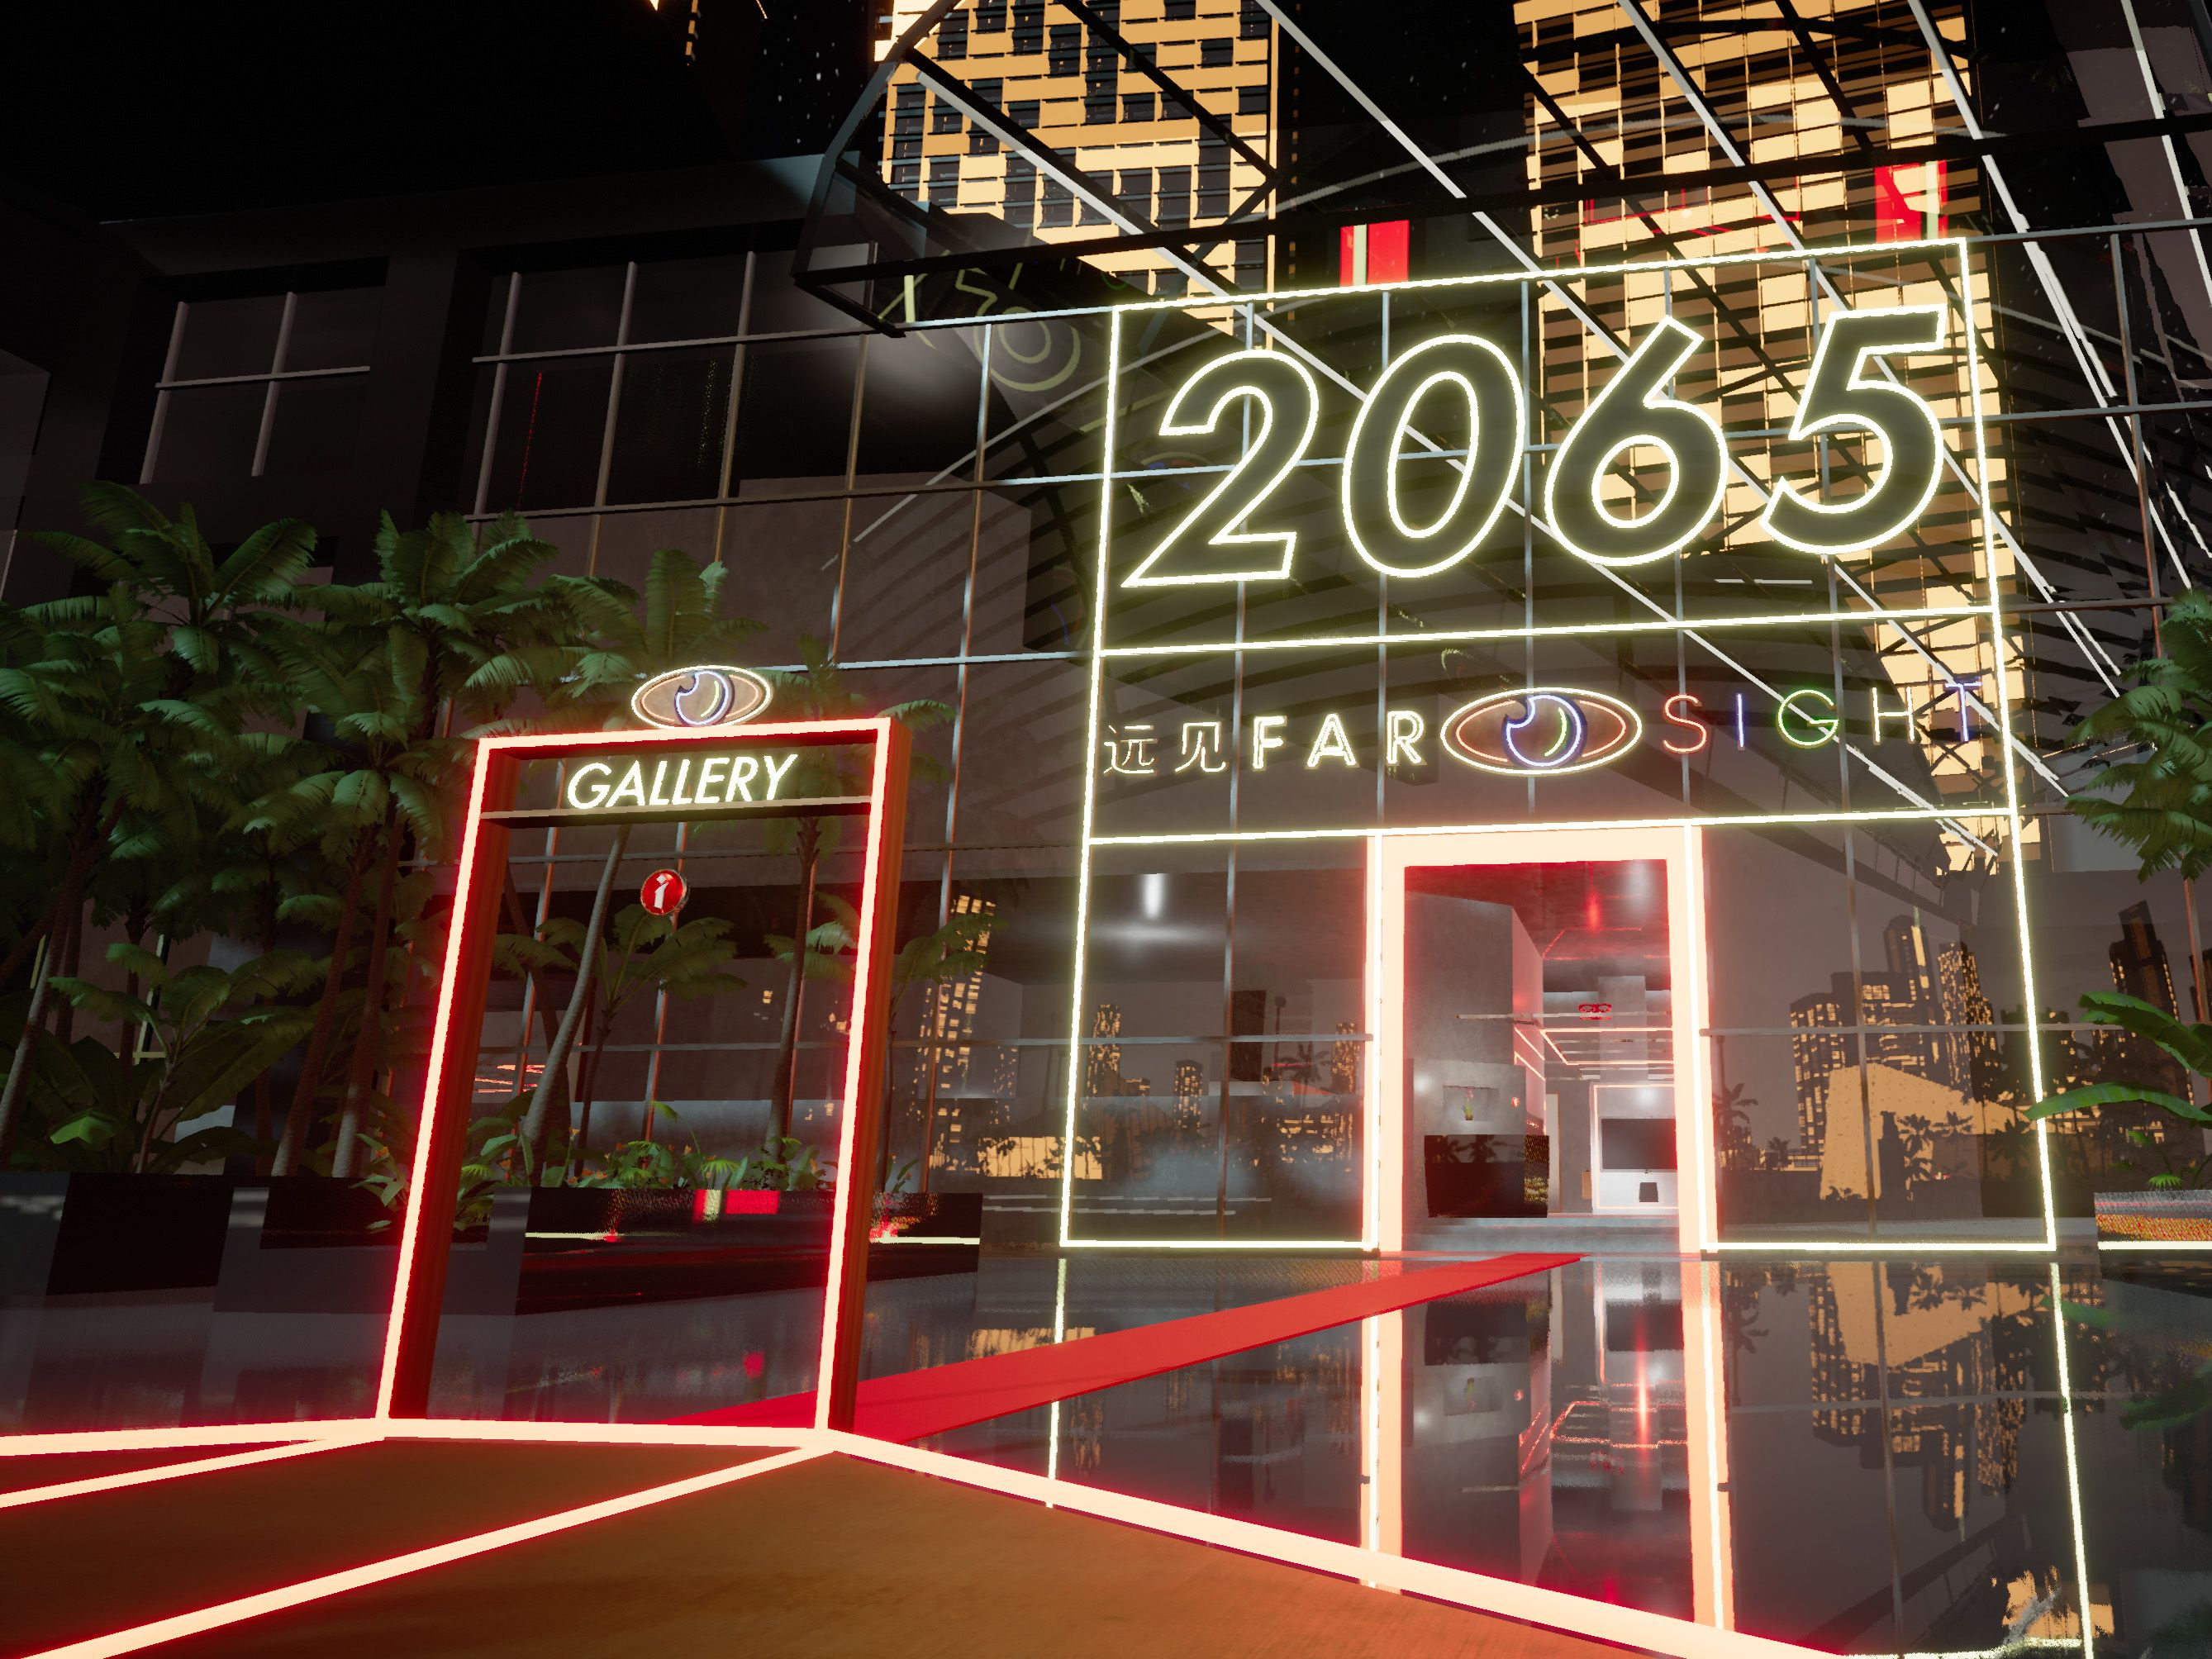 2065 large neon sign on building